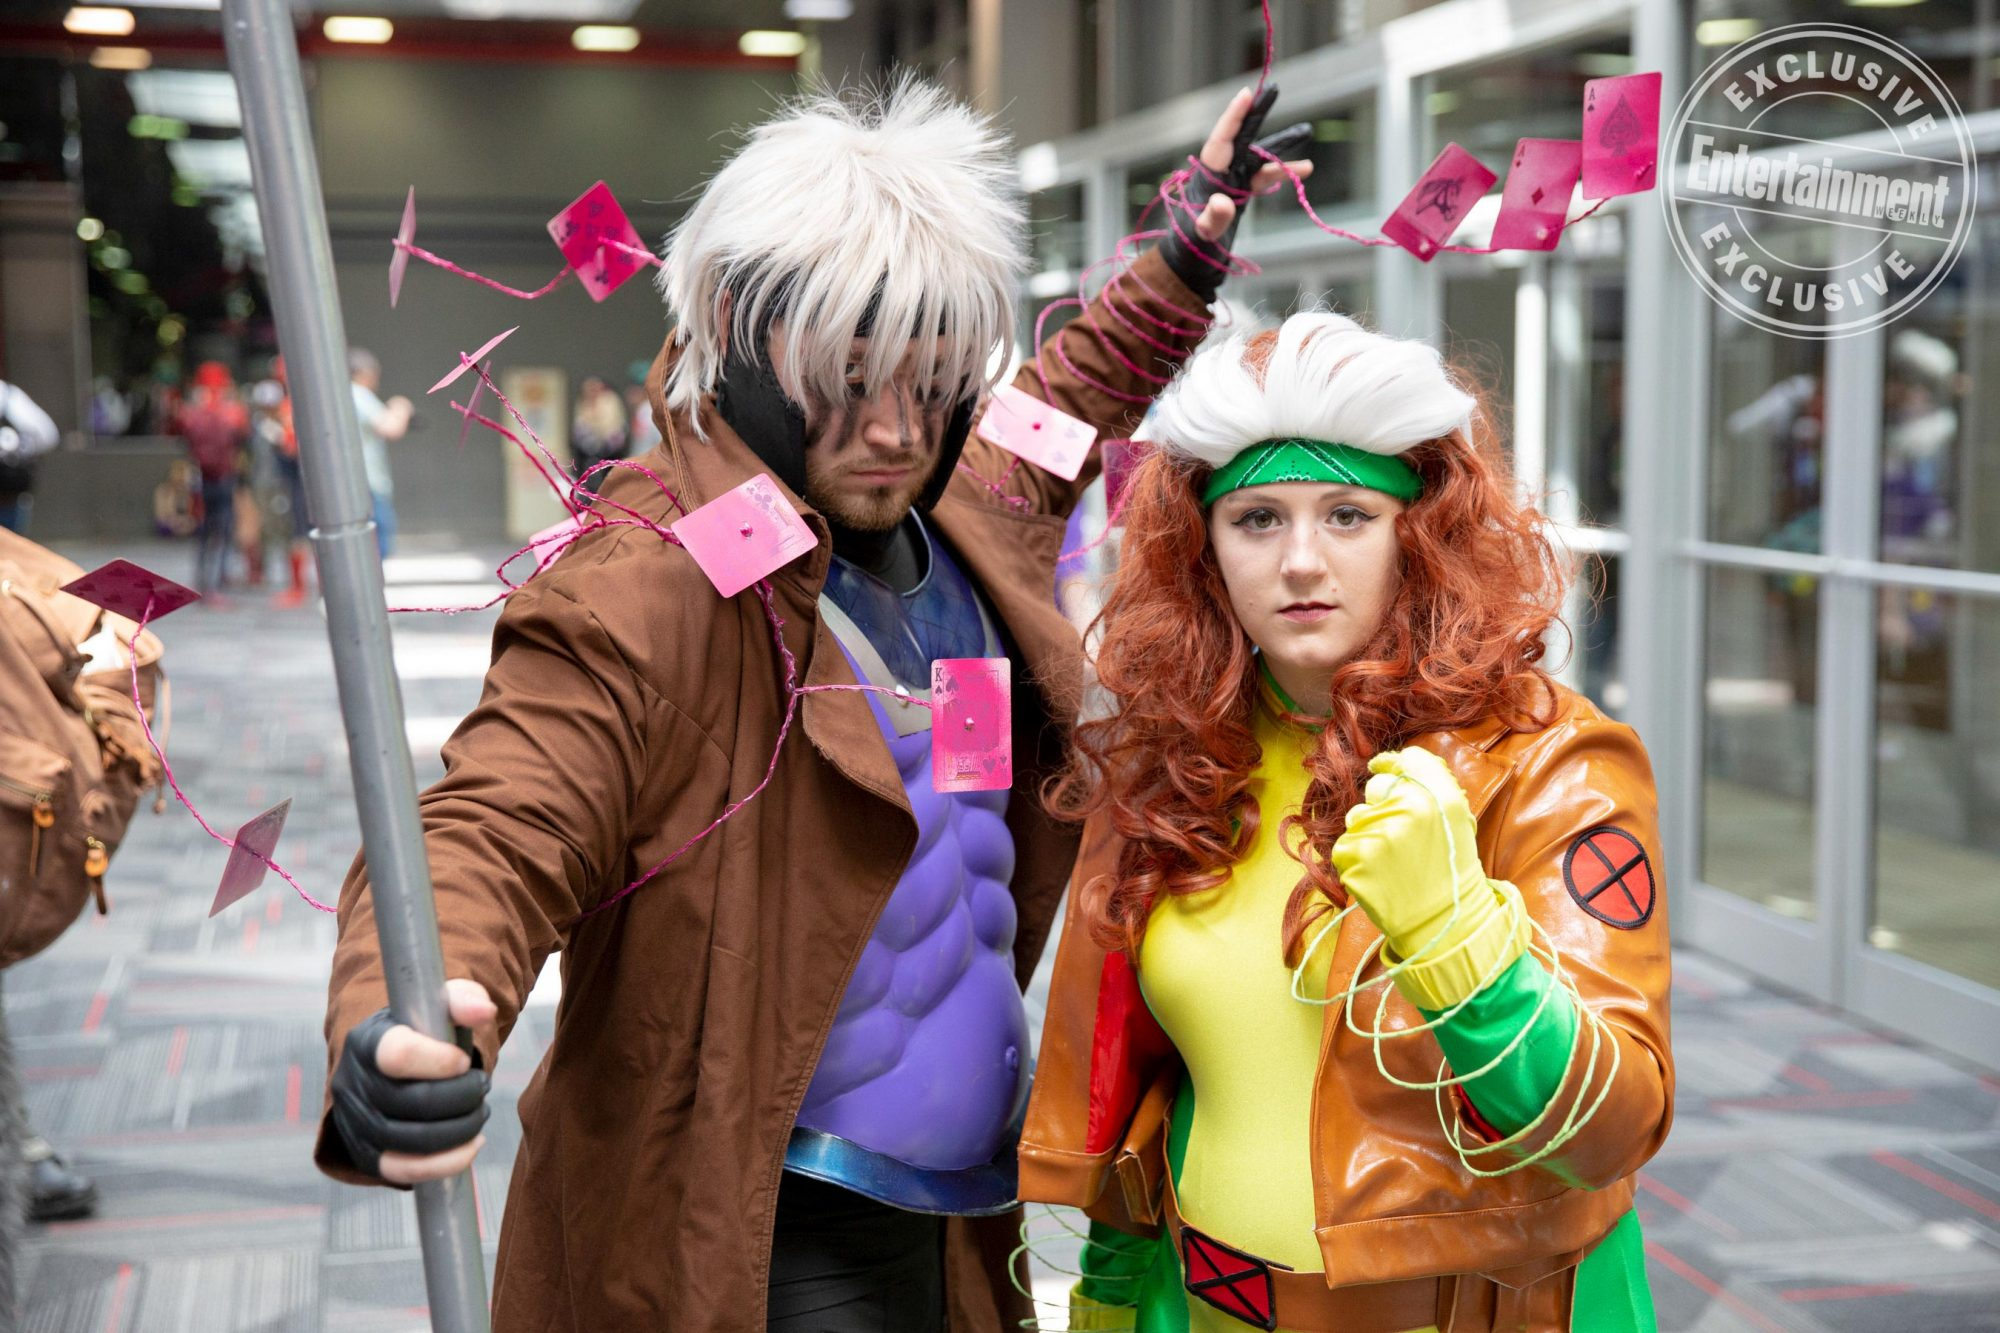 Anime Central 2019 cosplayers photographed on May 18th and 19th in Chicago, IL by Chris Cosgrove for Entertainment Weekly. -- Pictured: Apocalyptic Gambit from X-Men: Age of Apocalypse and 1990s Rogue from X-Men cosplayers